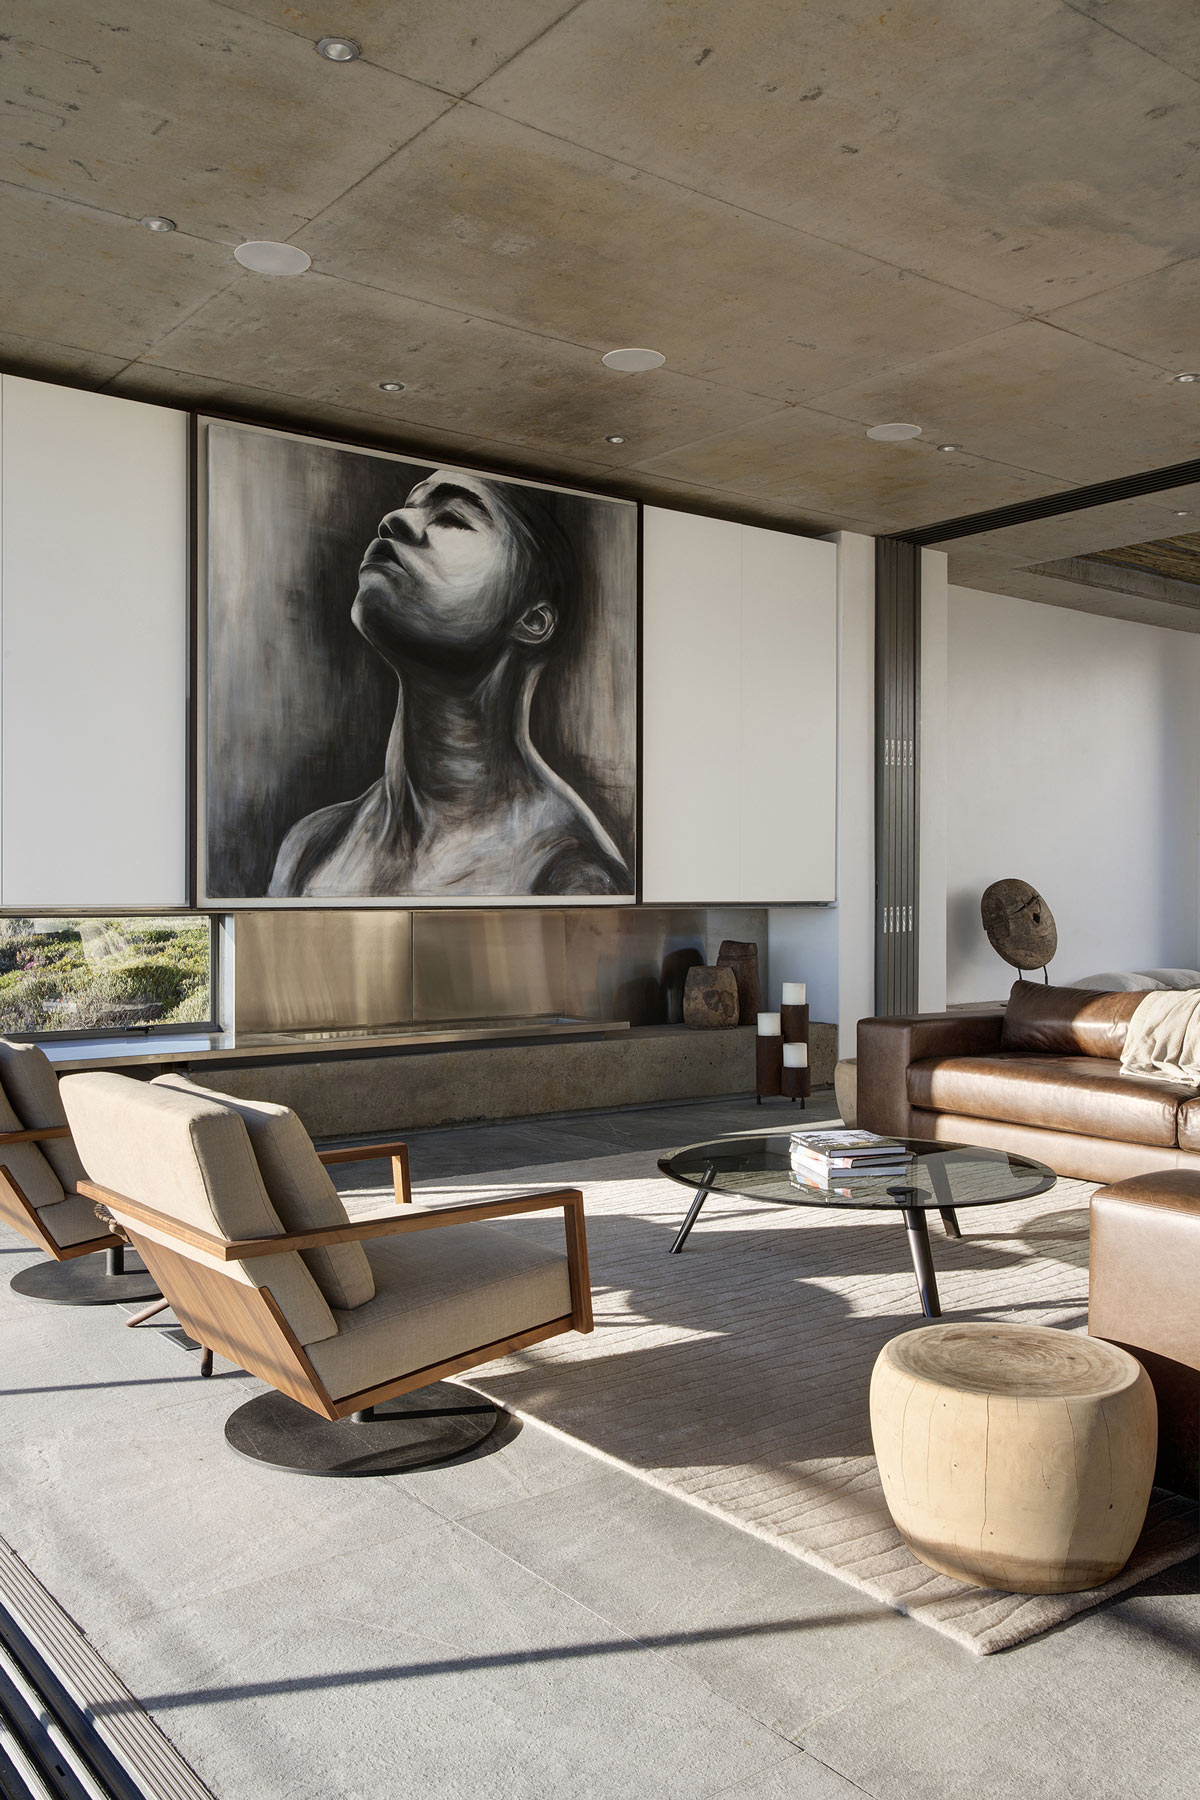 Concrete Ceiling, Art, Fireplace, Chairs, Holiday Home in Yzerfontein, South Africa